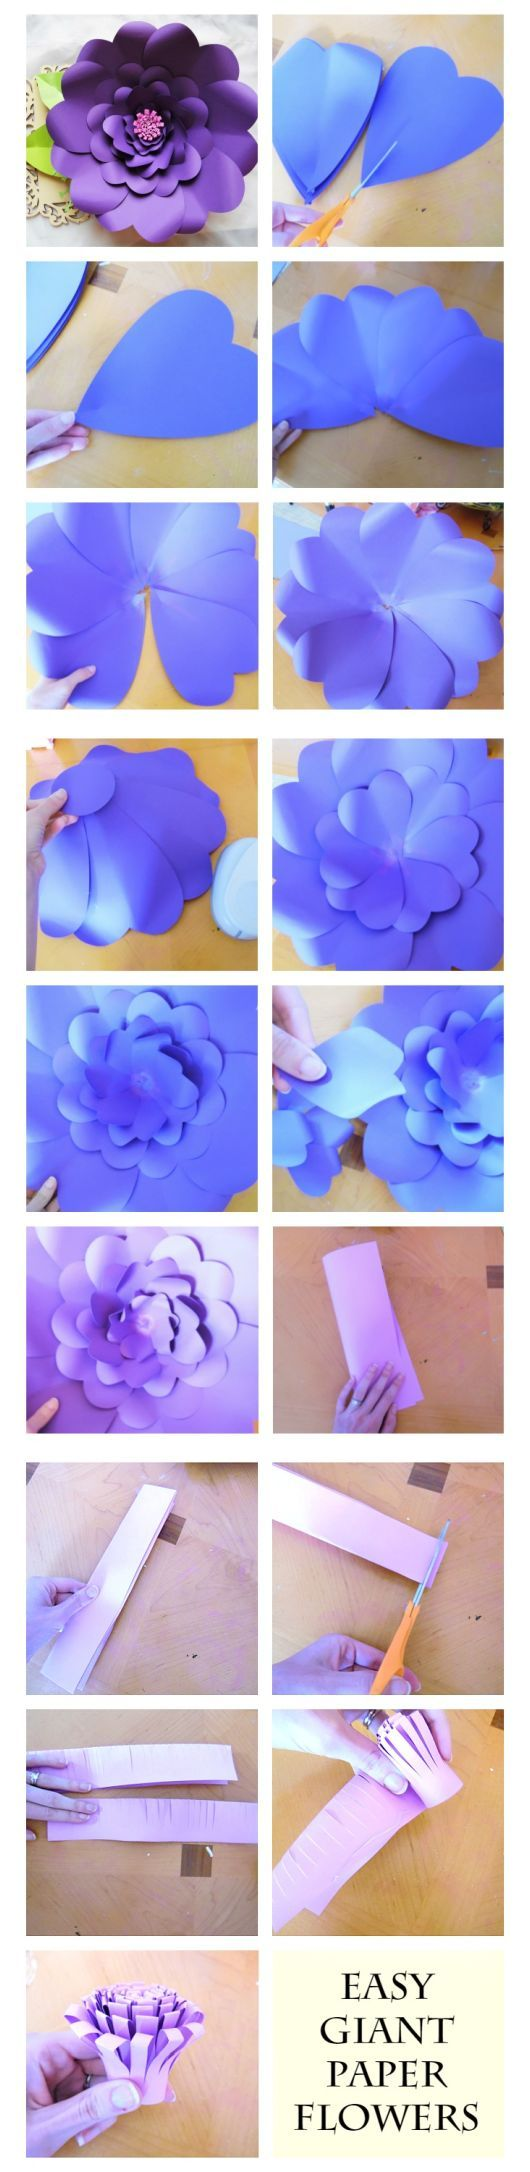 best images about flower petals on Pinterest  Flower Giant